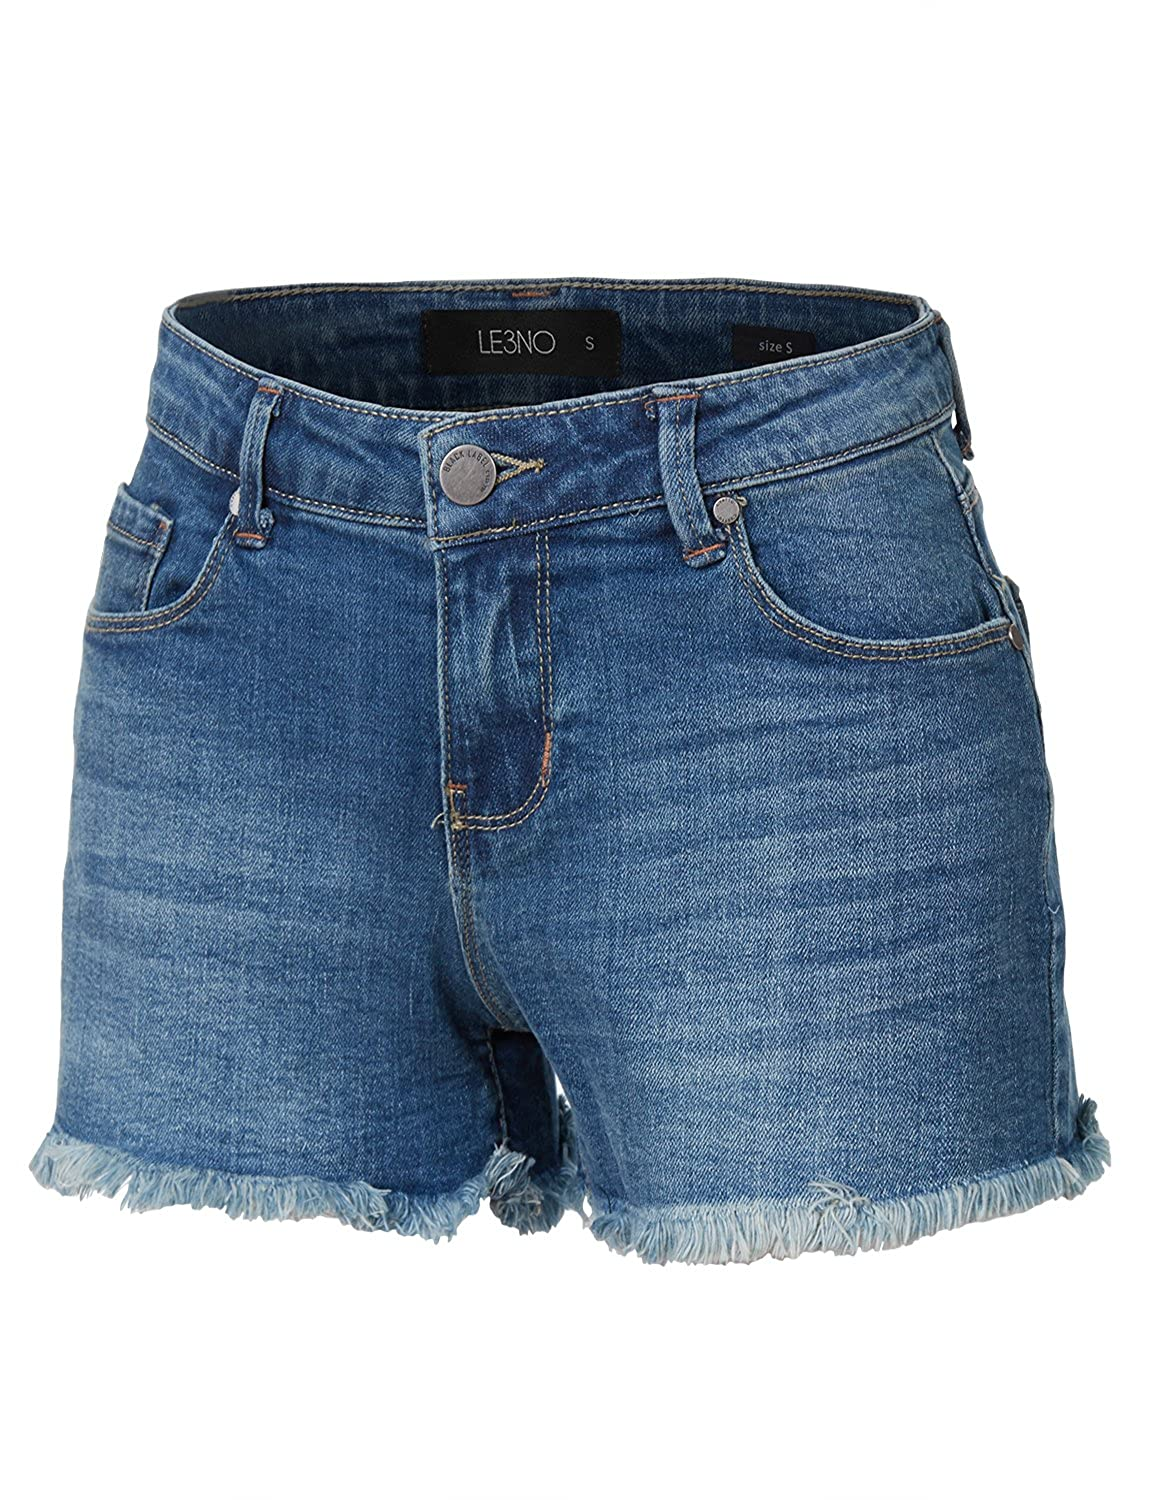 LE3NO Womens Stretchy Vintage Distressed Denim Jean Shorts with Pockets L3NWD2440A